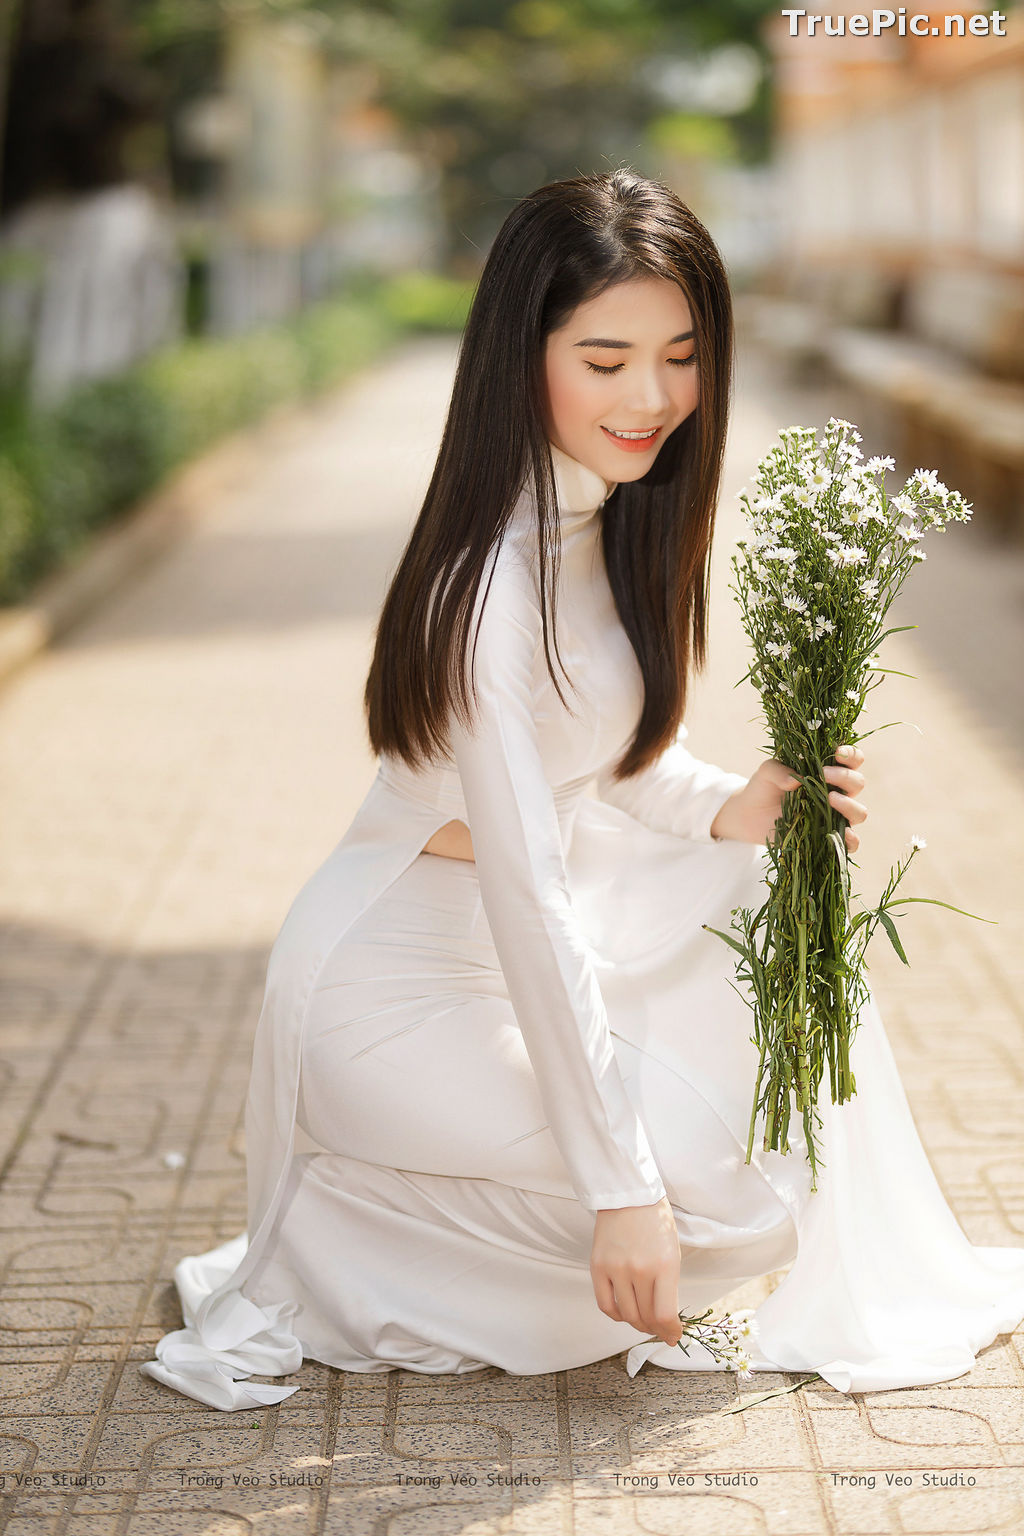 Image The Beauty of Vietnamese Girls with Traditional Dress (Ao Dai) #2 - TruePic.net - Picture-5